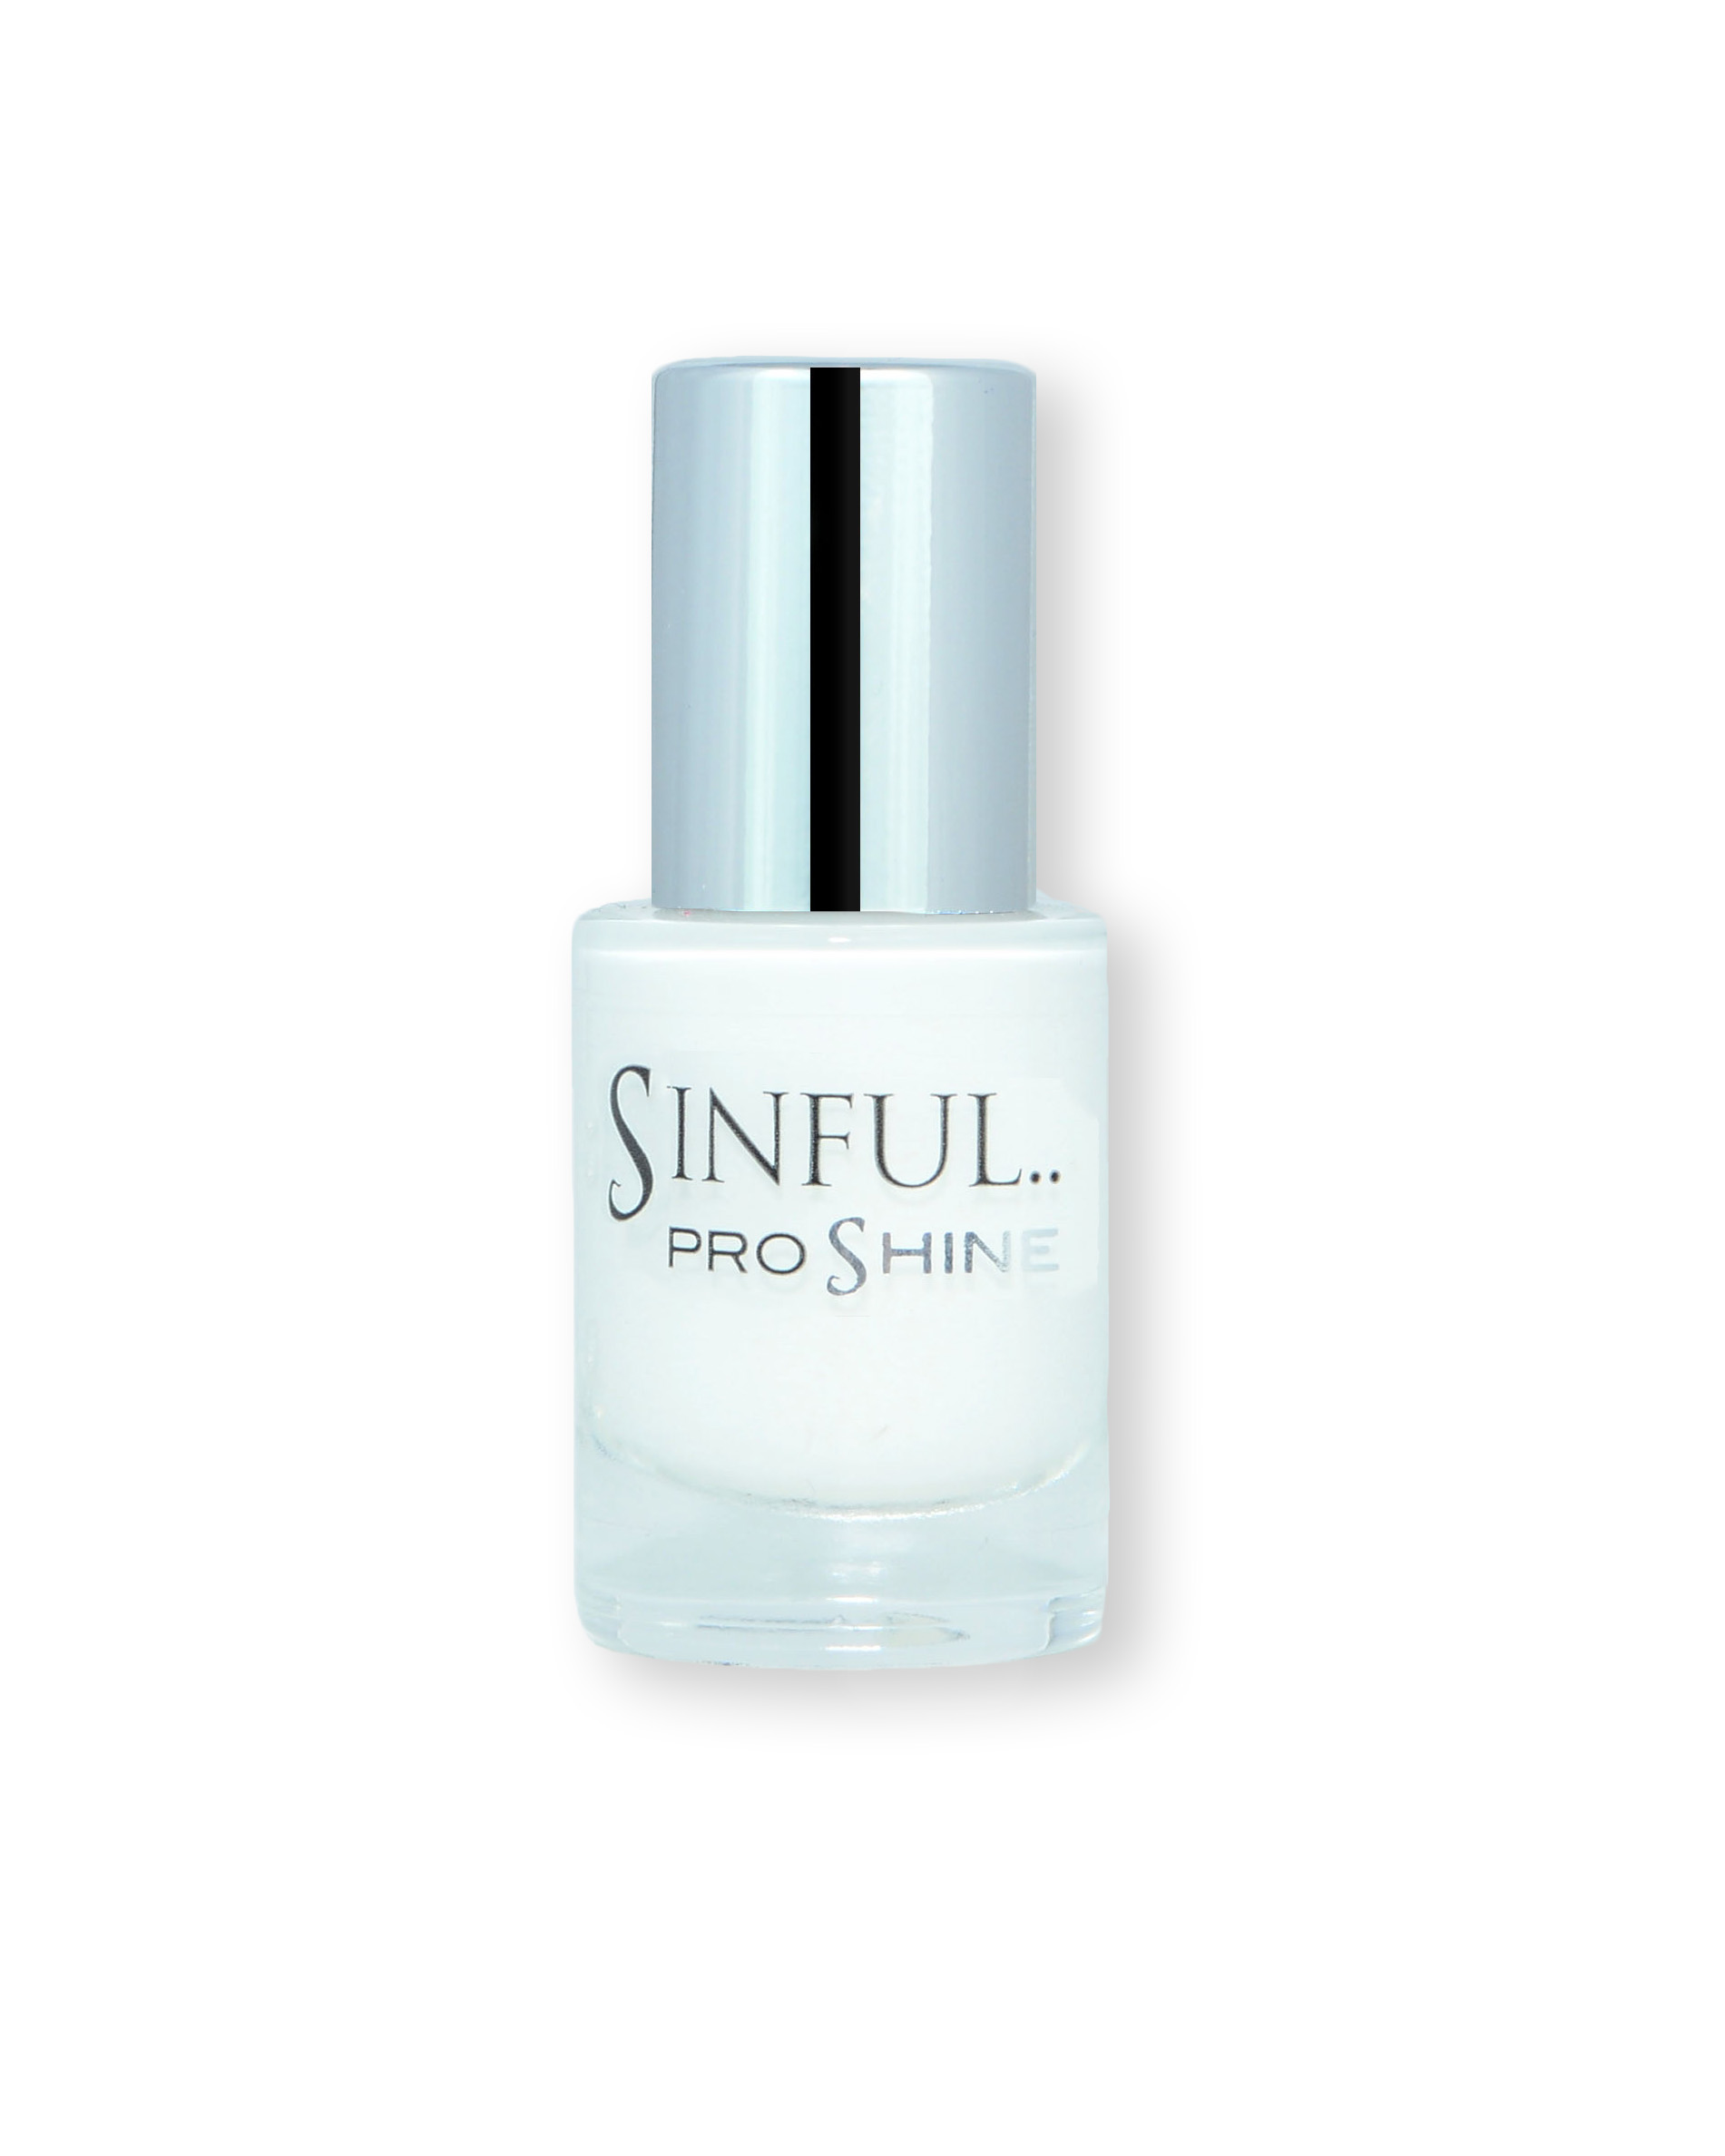 Sinful PROshine is a revolution into top spec imitation gel-like formula, easy application, full coverage and a sleek finish.